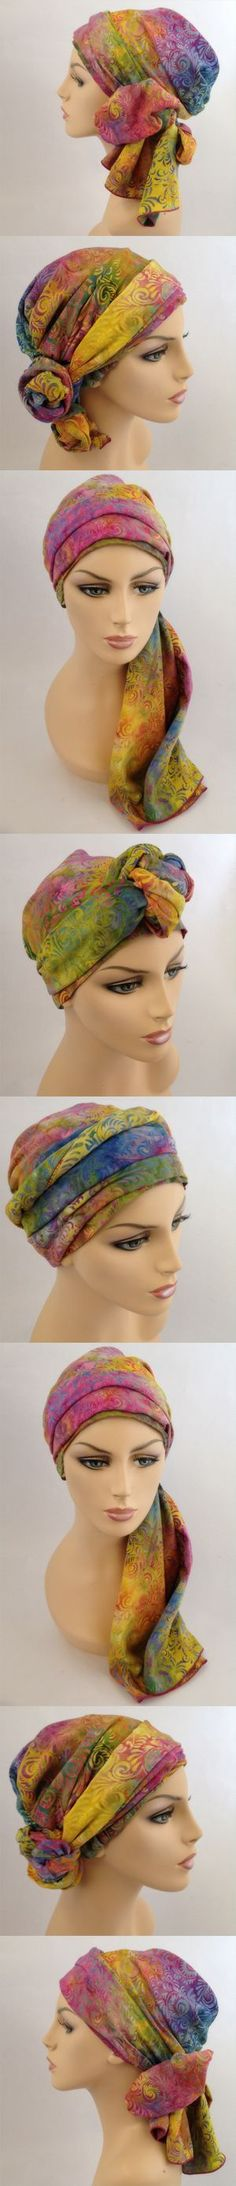 How to tie a turban